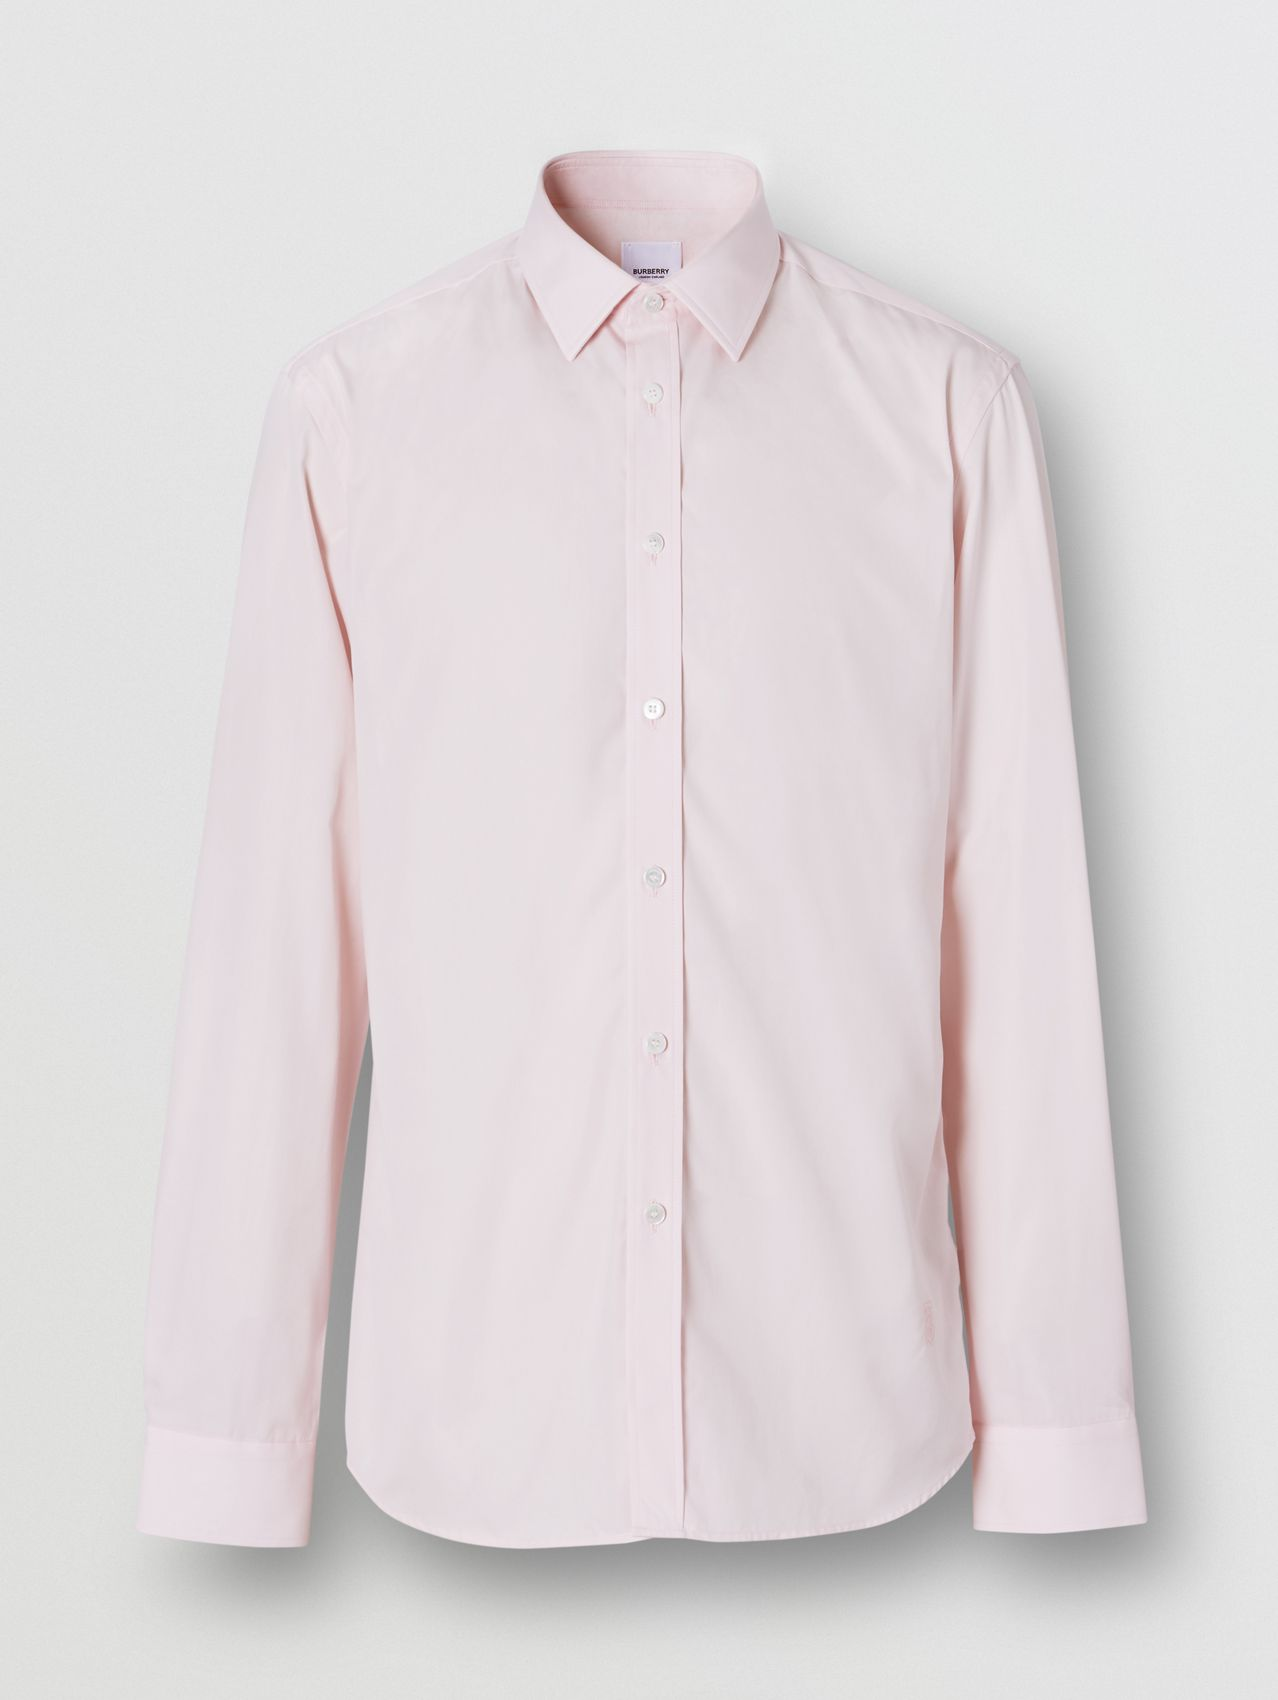 Slim Fit Monogram Motif Cotton Poplin Shirt in Alabaster Pink